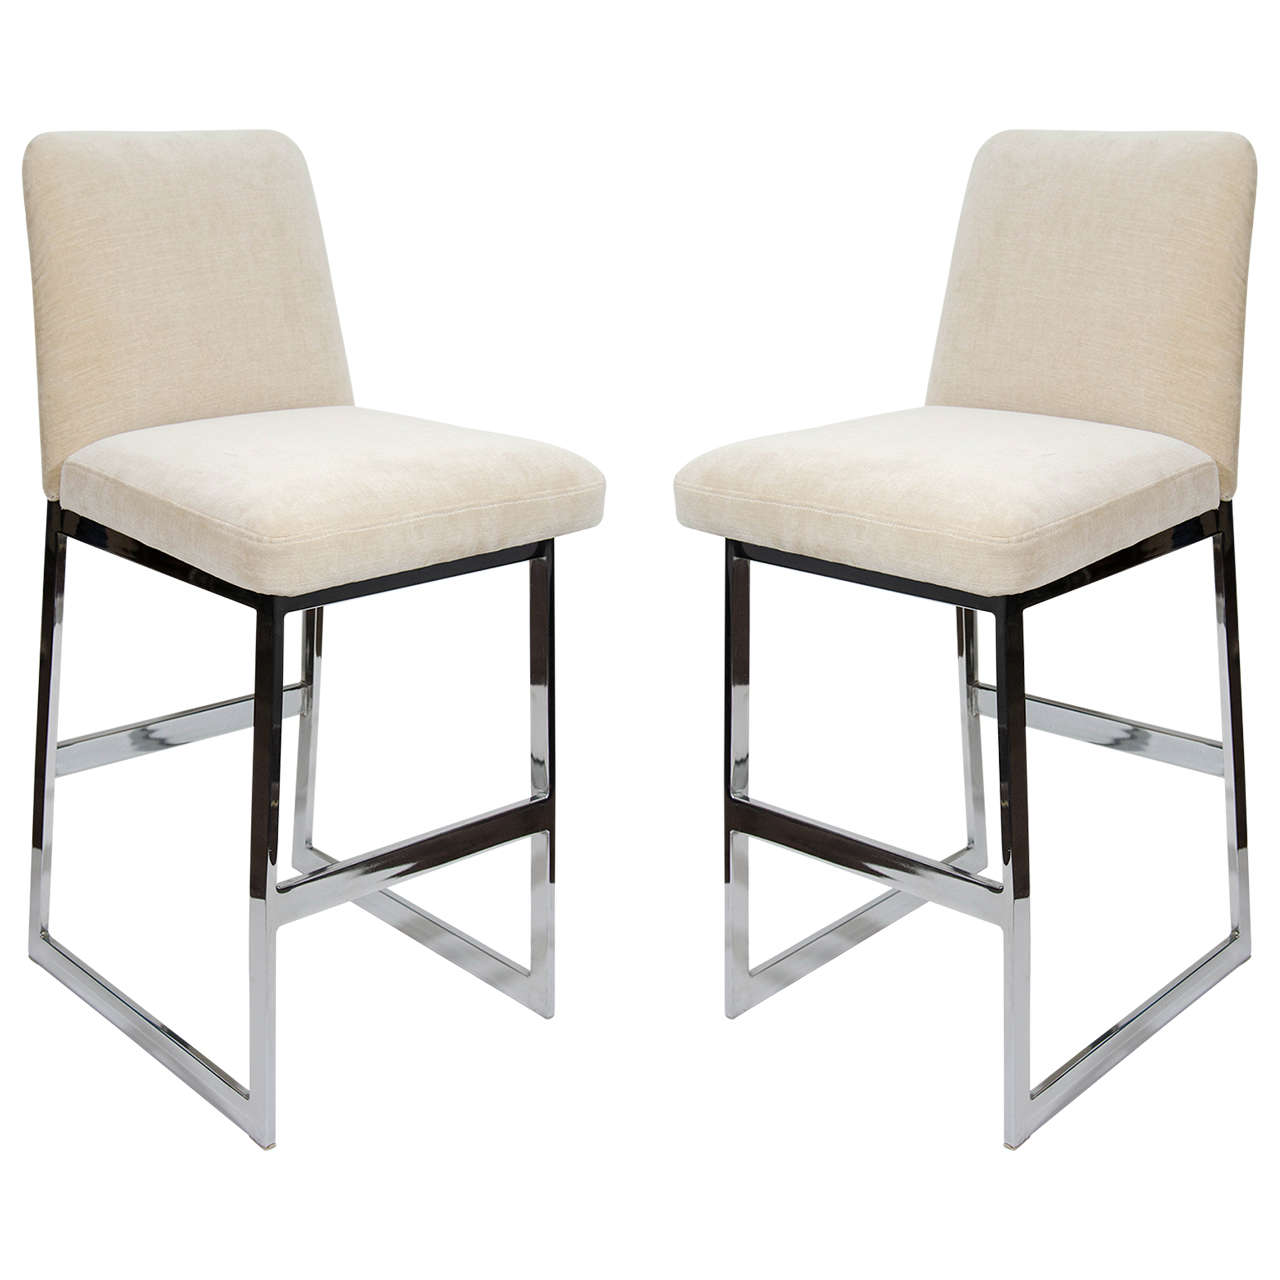 Pair Of Luxe Mid Century Modern Upholstered Counter Stools